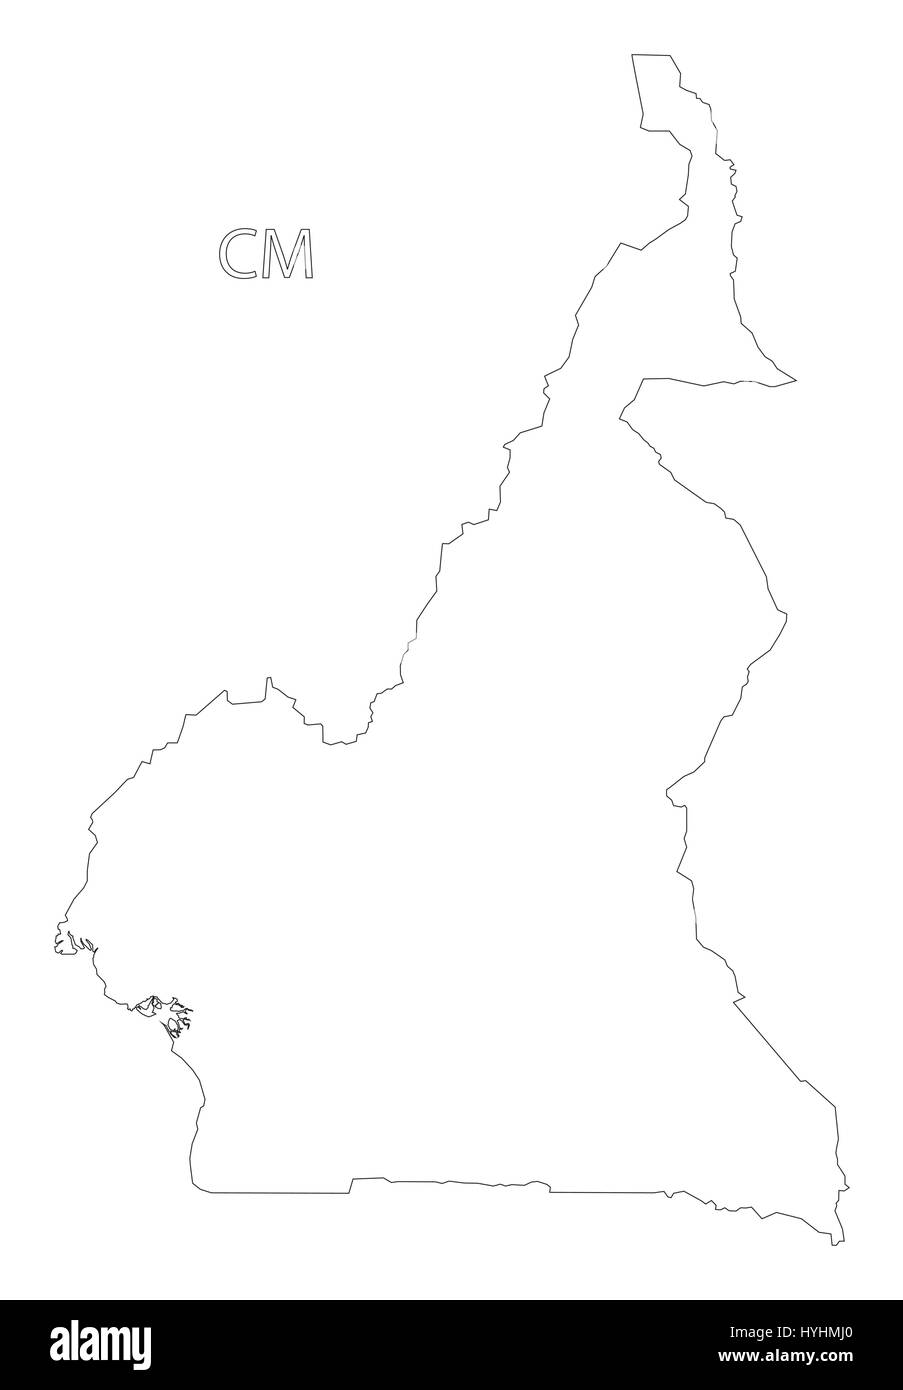 Cameroon outline silhouette map illustration stock vector art cameroon outline silhouette map illustration ccuart Image collections